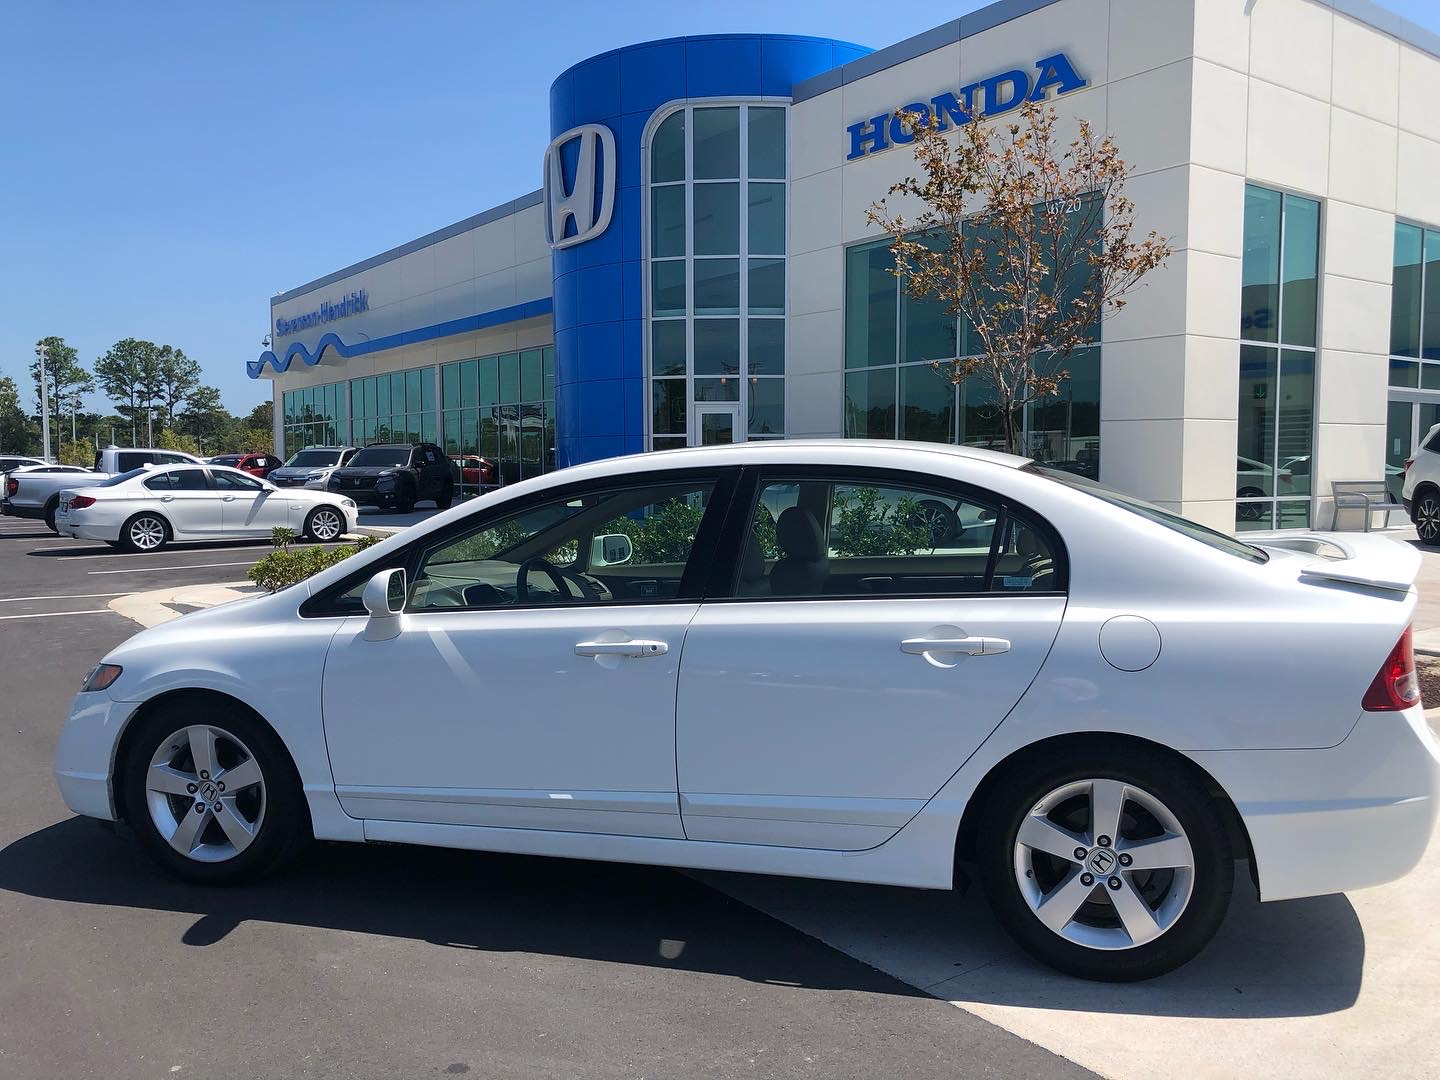 2008 Honda Civic sedan in white.